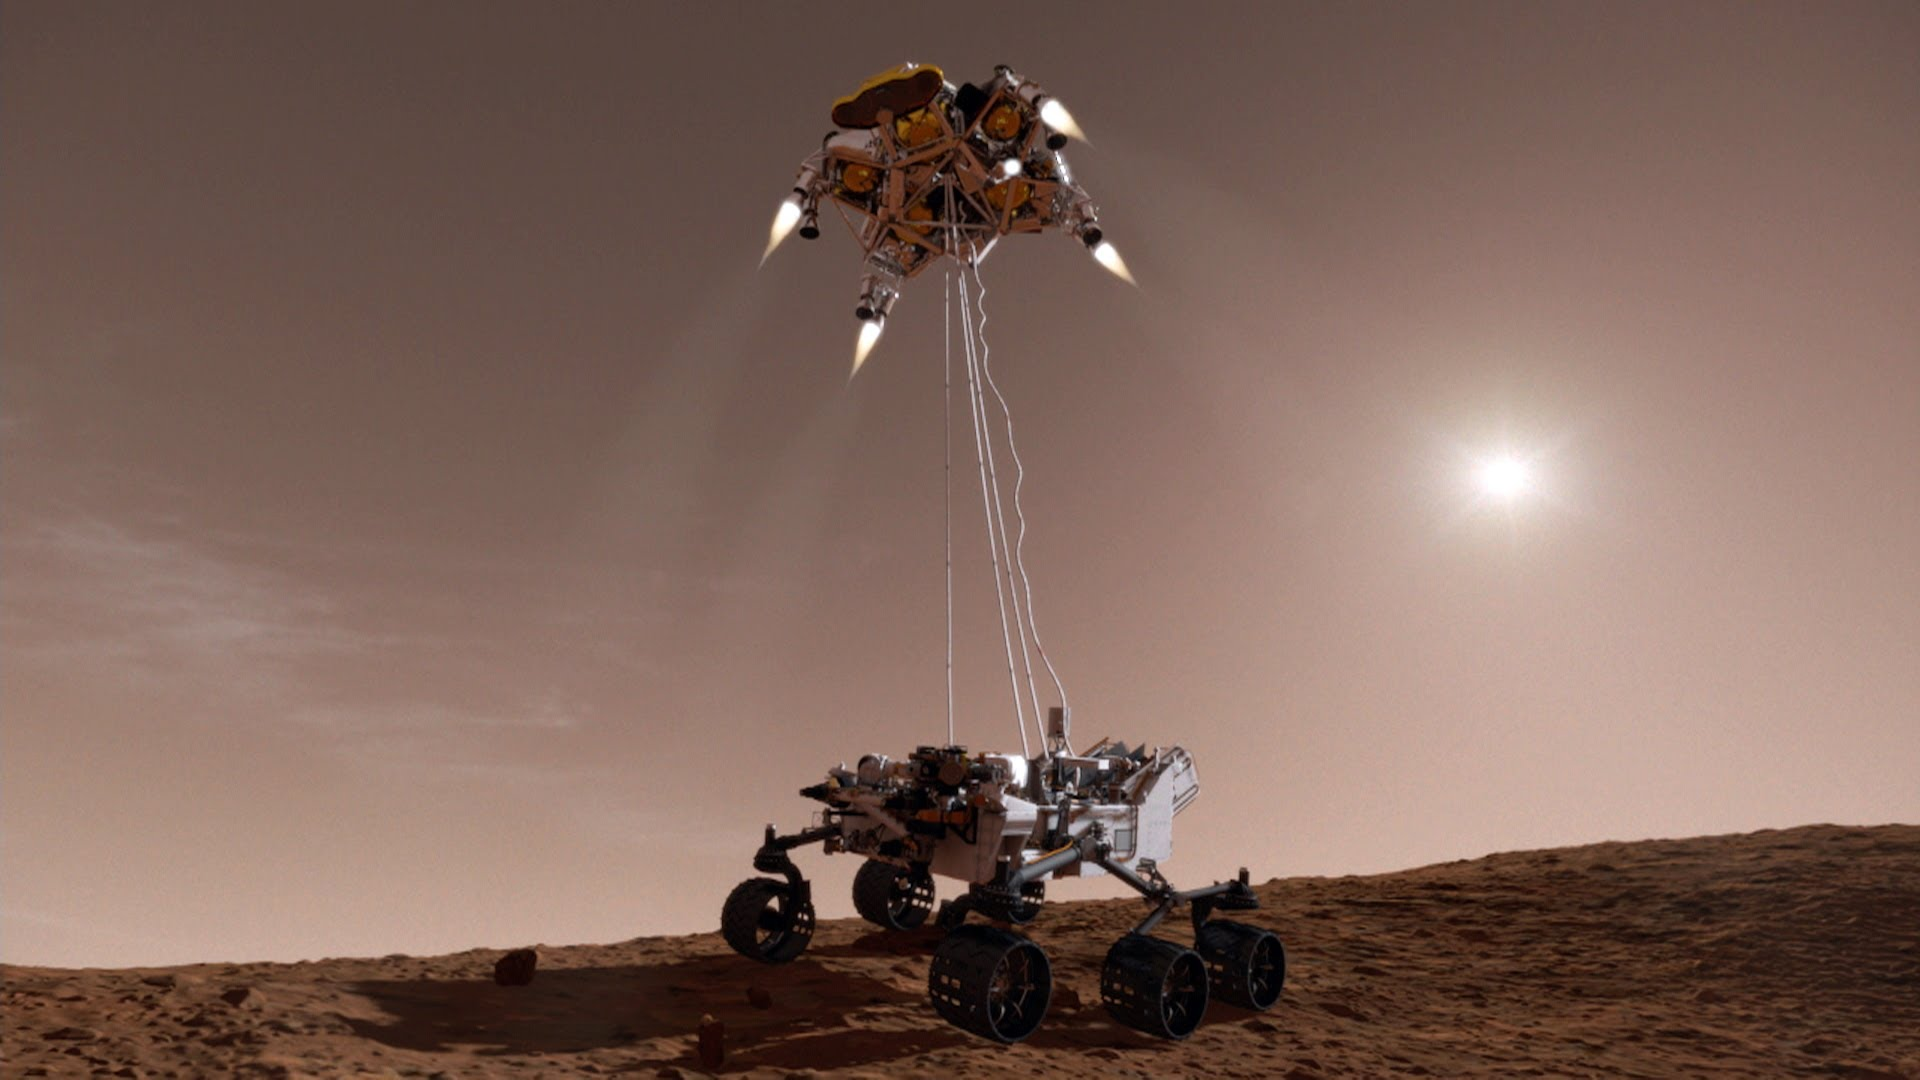 Parachutes, Sky Cranes and More: 5 Ways To Land On Mars | Space